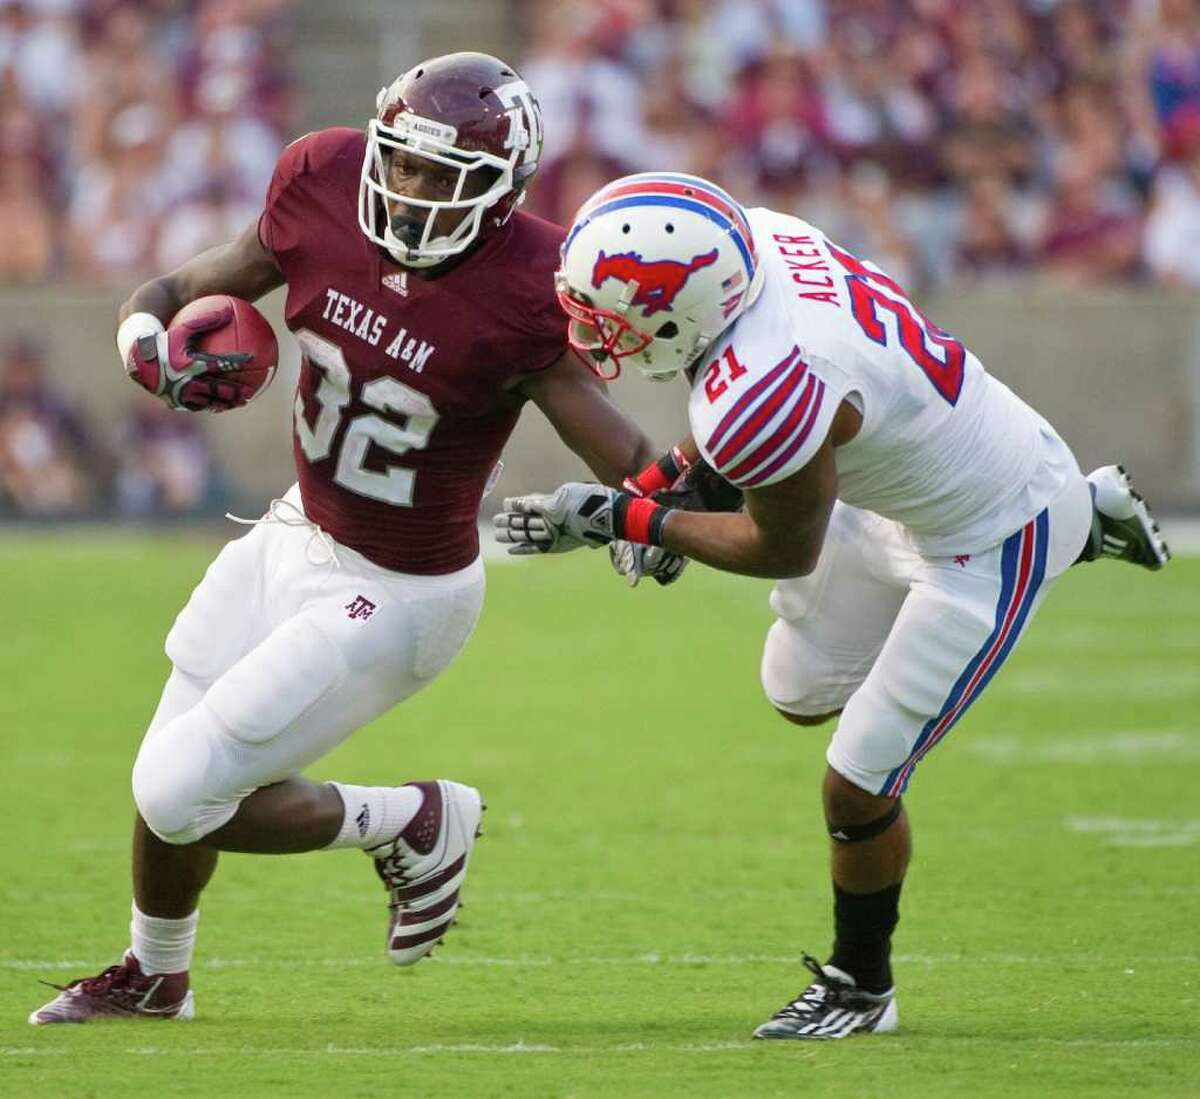 Texas A&M's Cyrus Gray (left) fends off SMU's Kenneth Acker during Sunday's 132-yard outing.